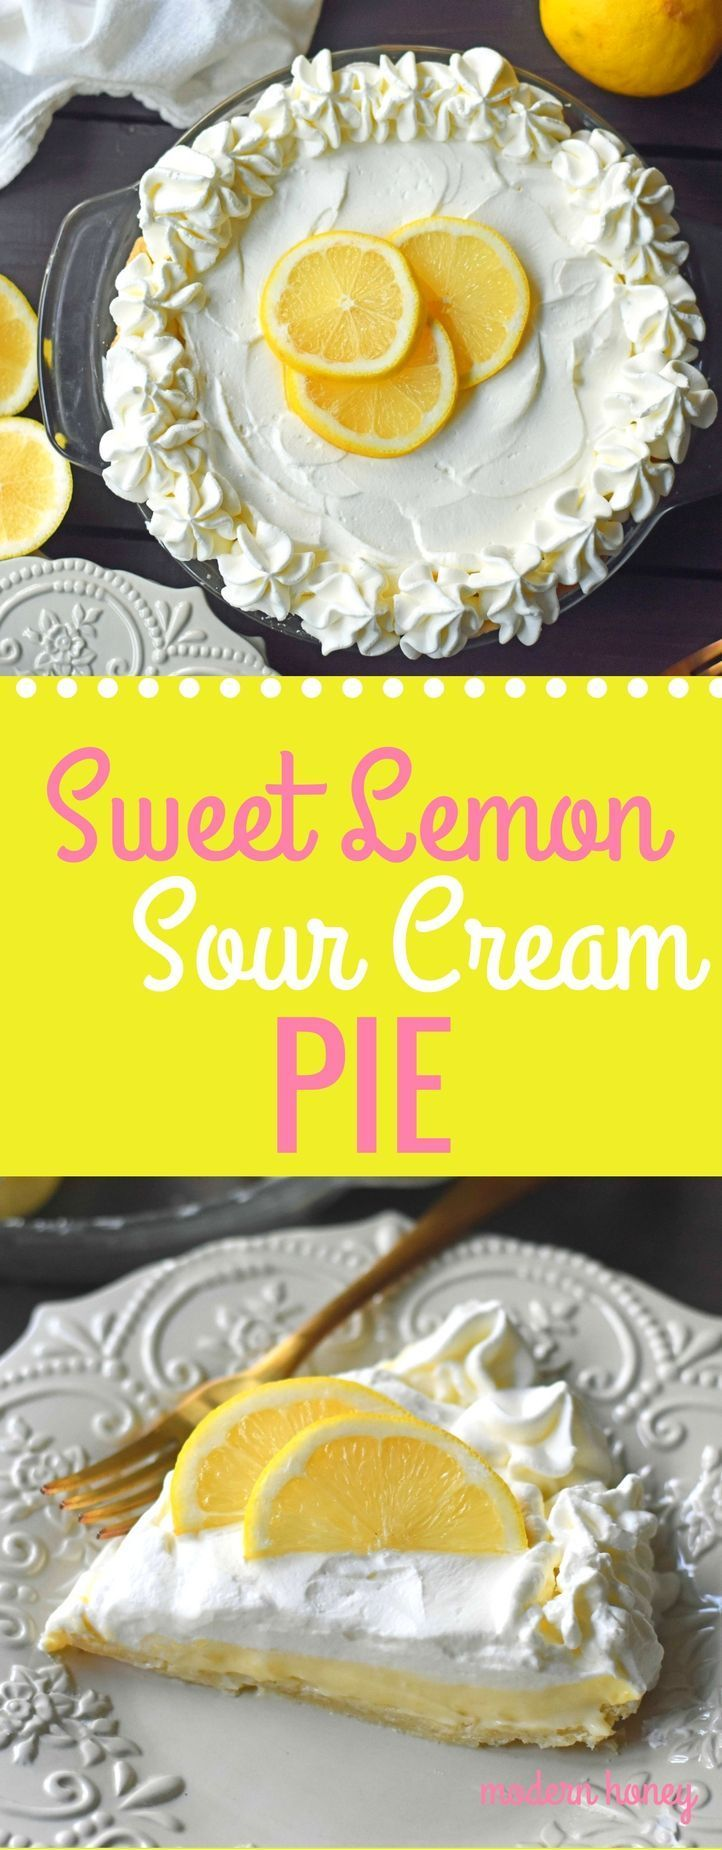 Sweet Lemon Sour Cream Pie Made With Freshly Squeezed Lemon Juice Sugar Eggs And Sour Cream To Make It Lemon Sour Cream Pie Yummy Food Dessert Lemon Recipes